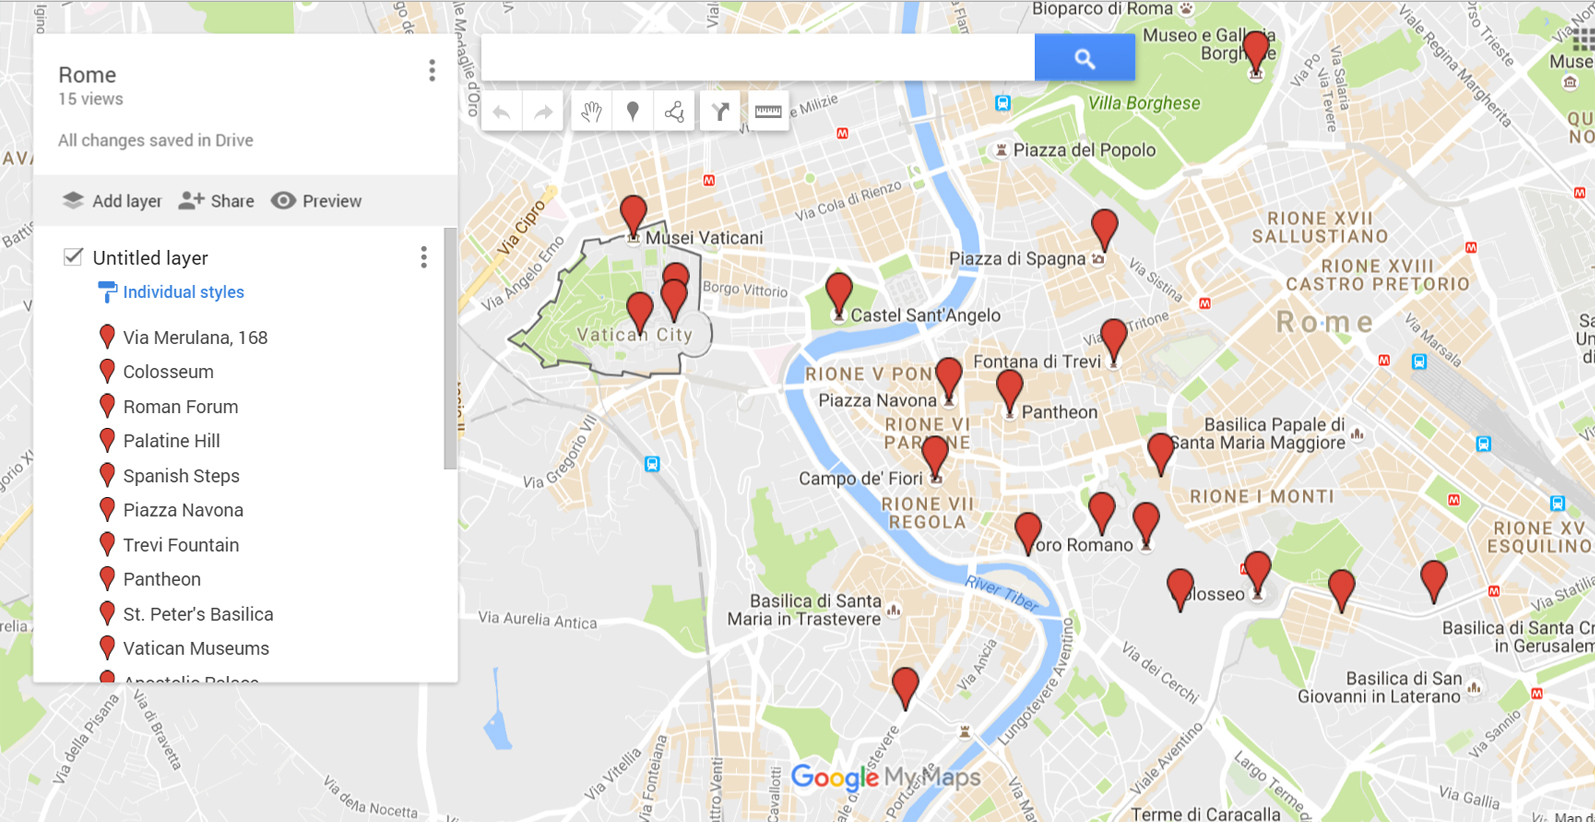 Google Maps with site markers